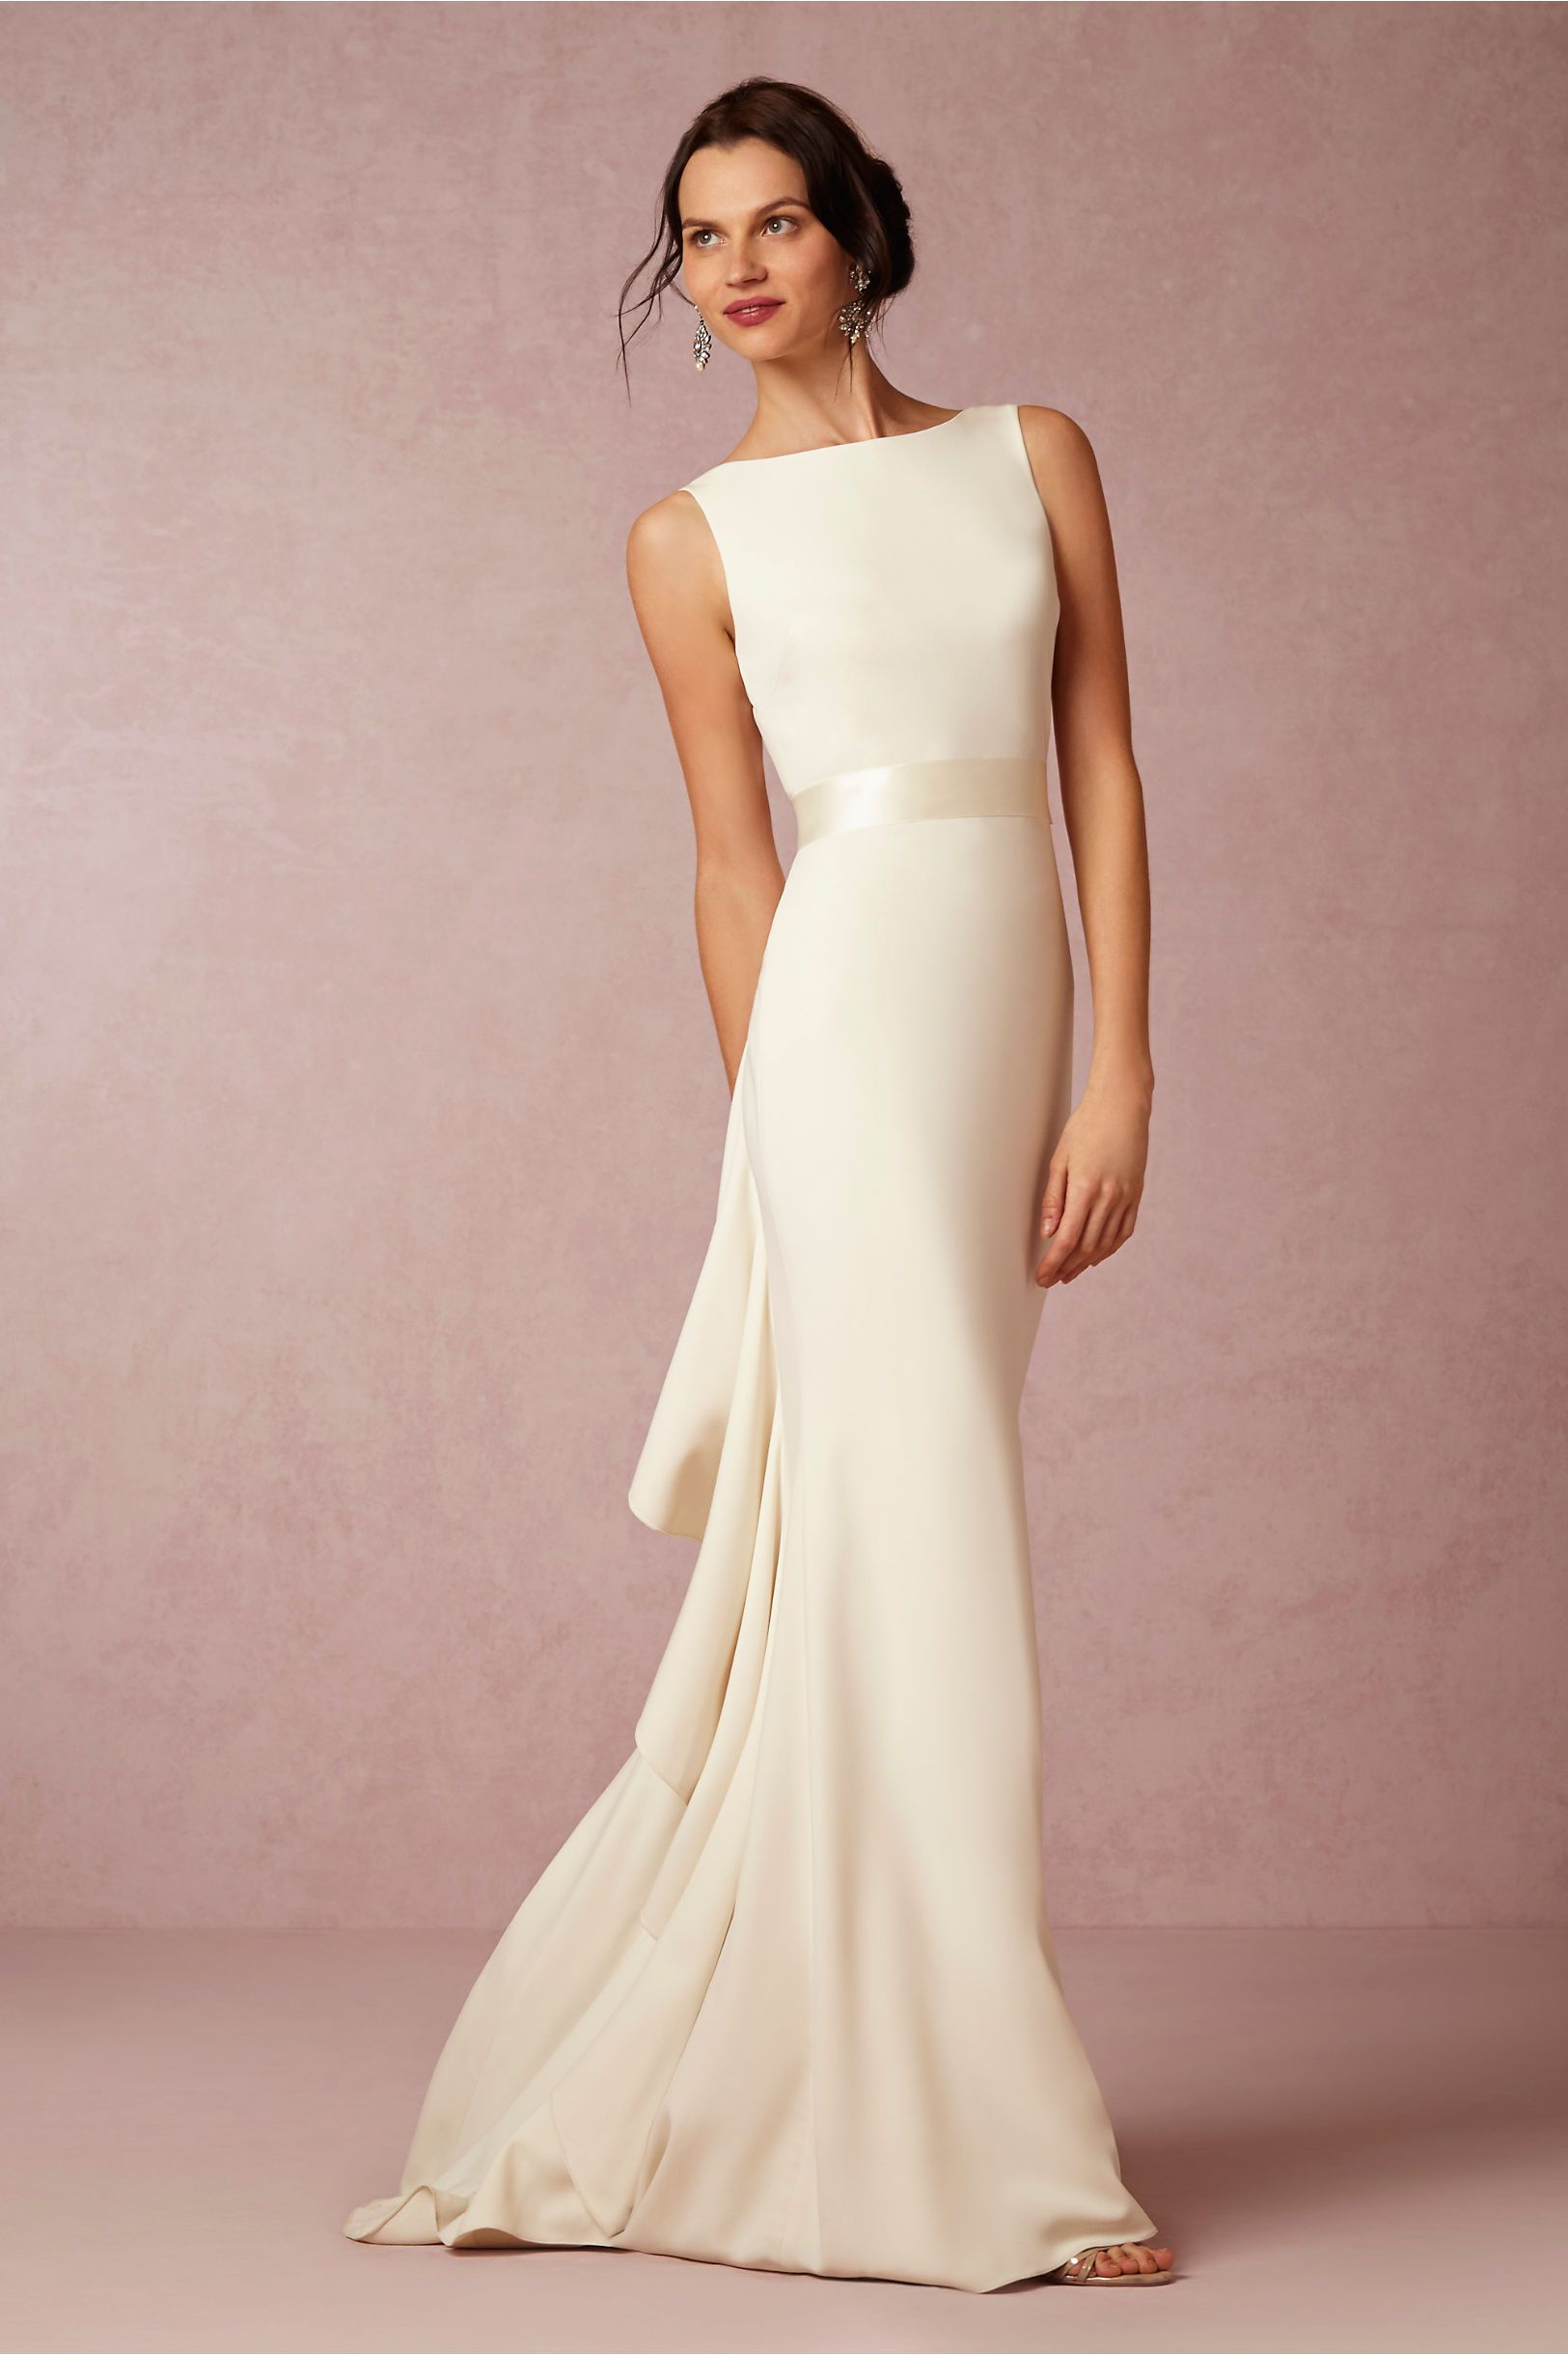 Stunning Collection of Sheath Wedding Dresses | Wedding ideas ...